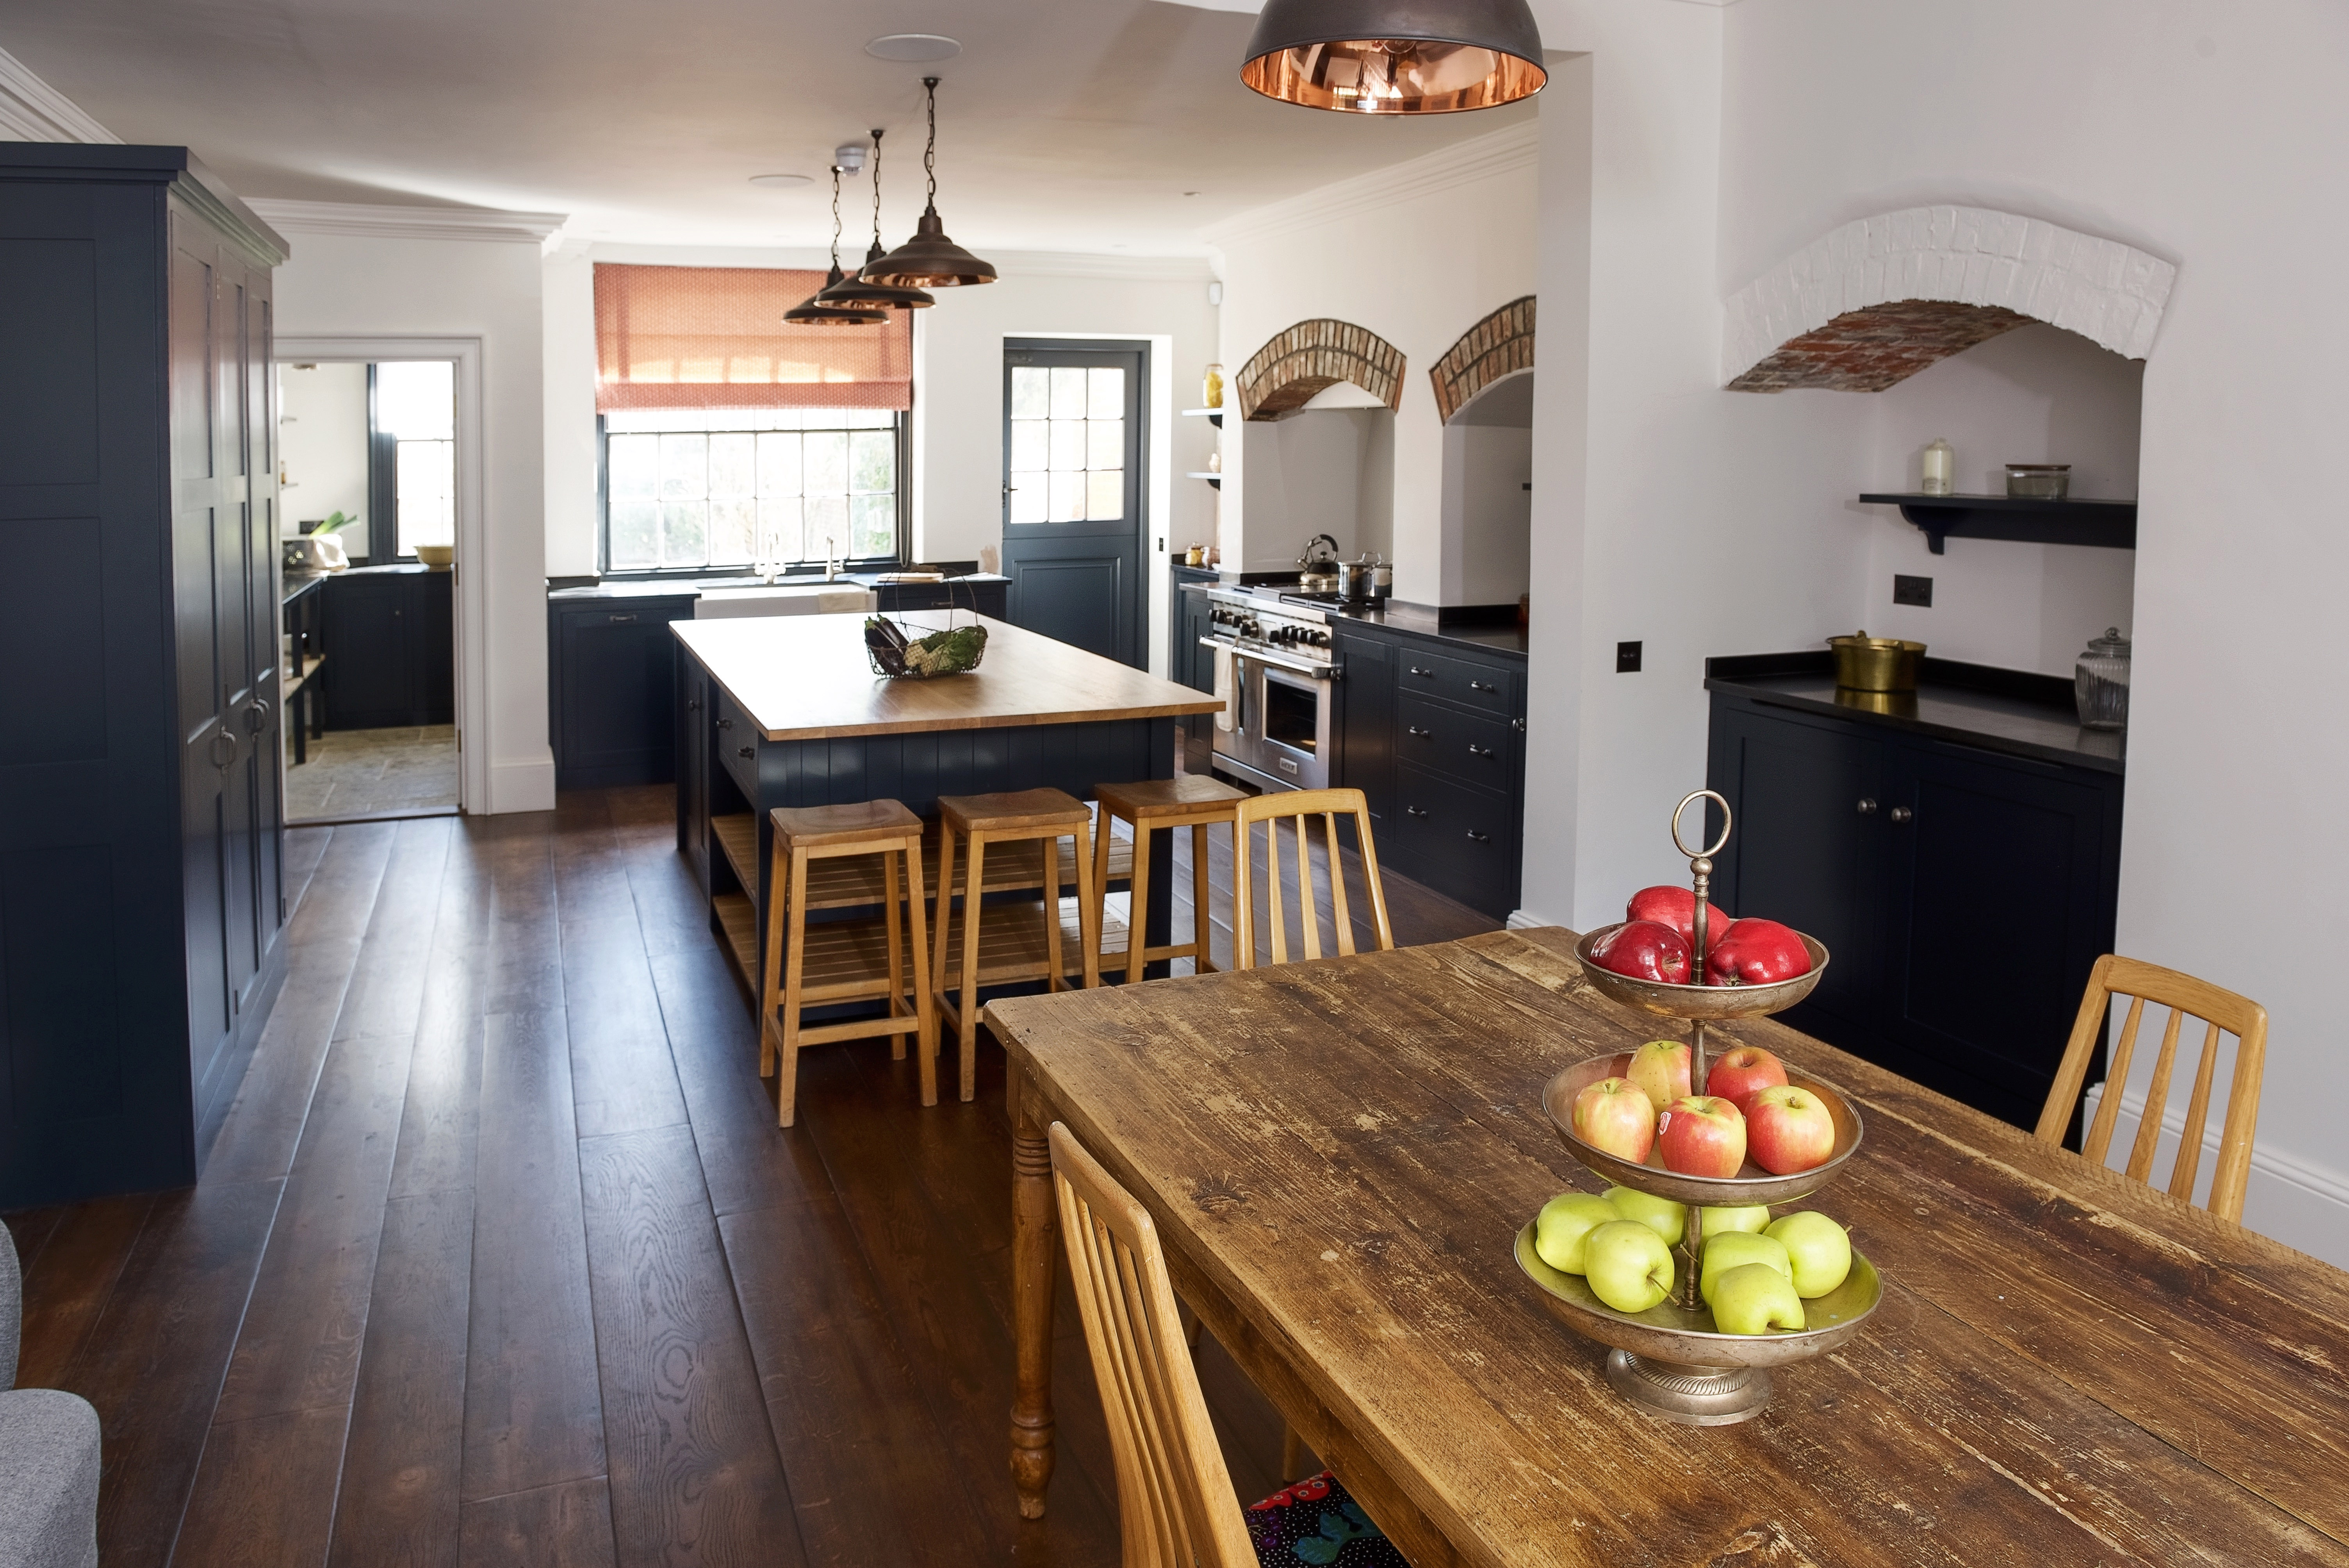 Bespoke shaker kitchen hand painted in Farrow & Ball Railings with black granite and oak worktops and vintage iron hardware.